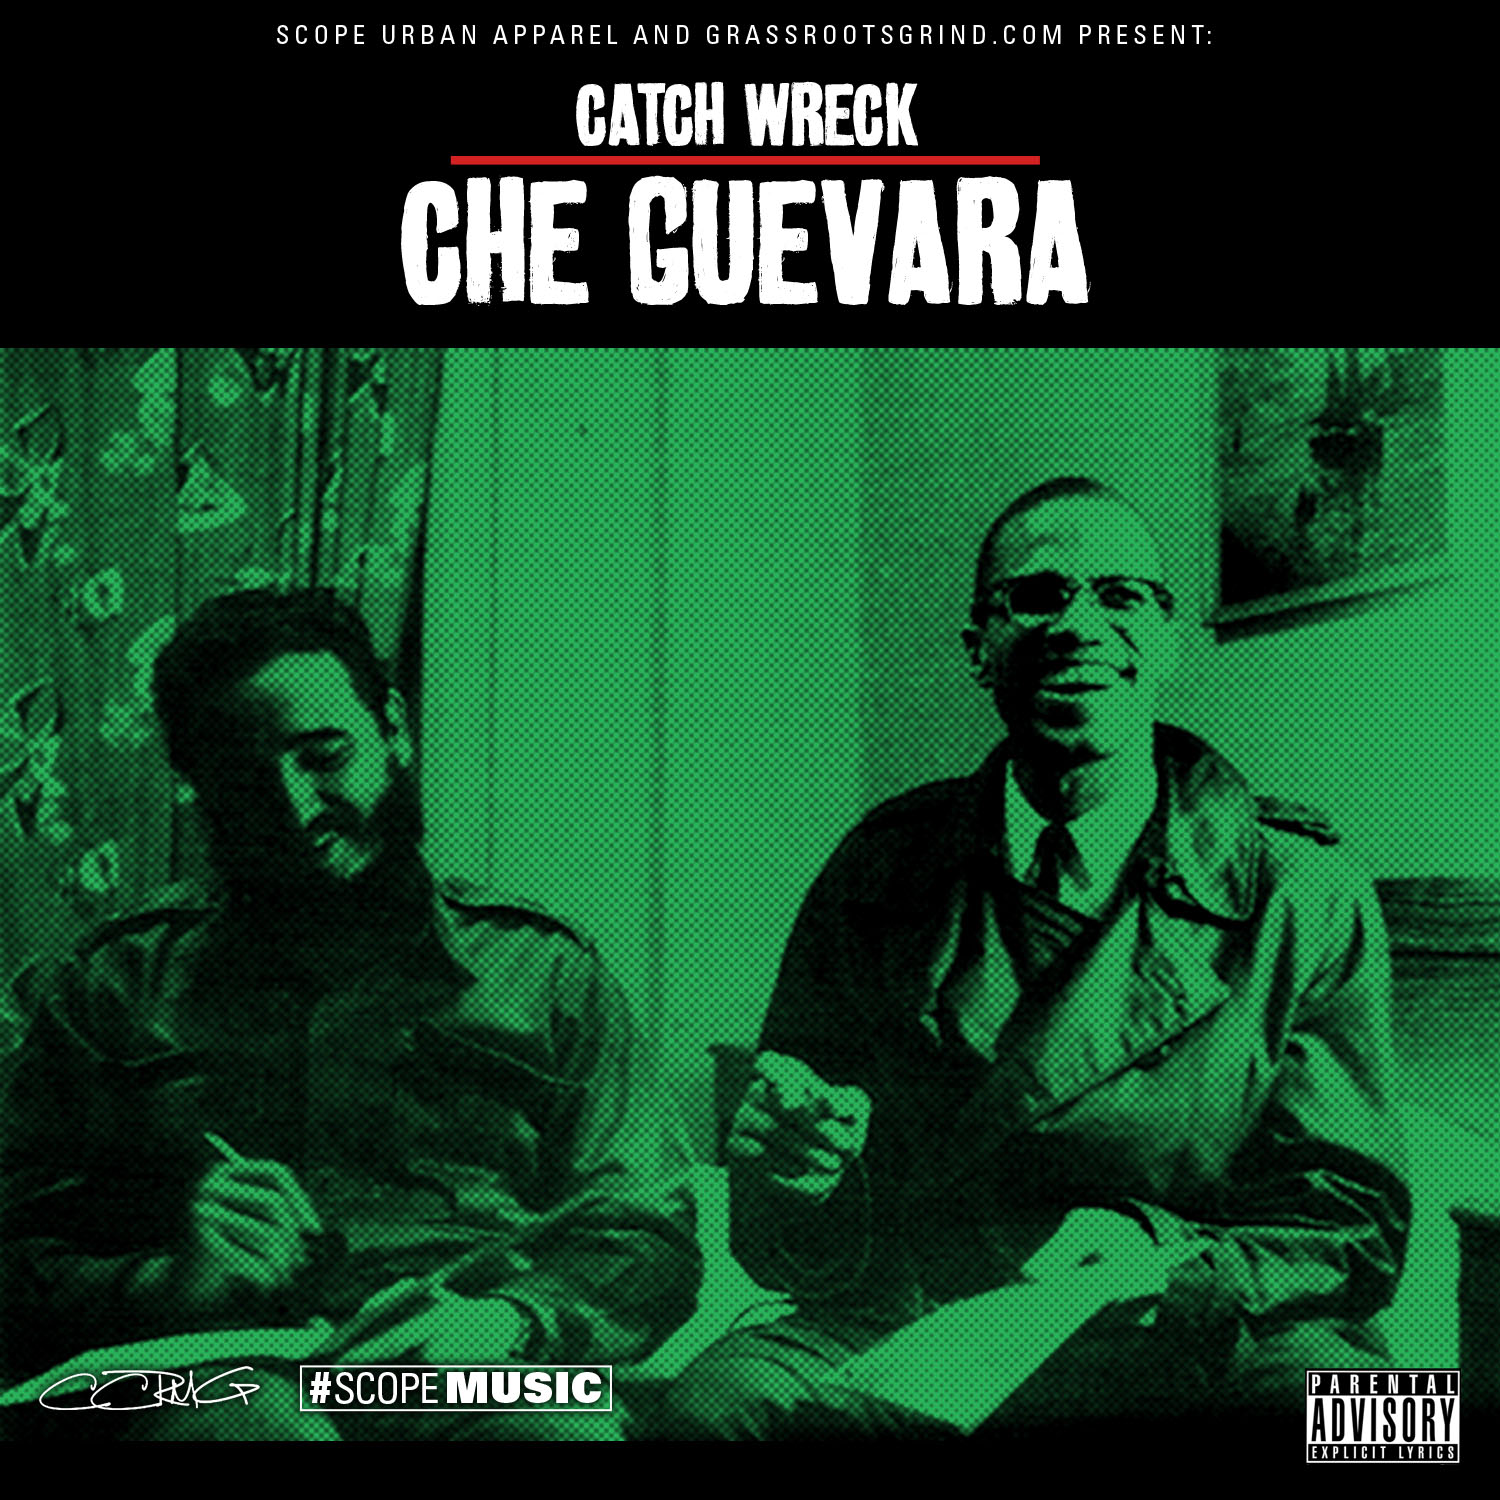 Catch Wreck - Che Guevara